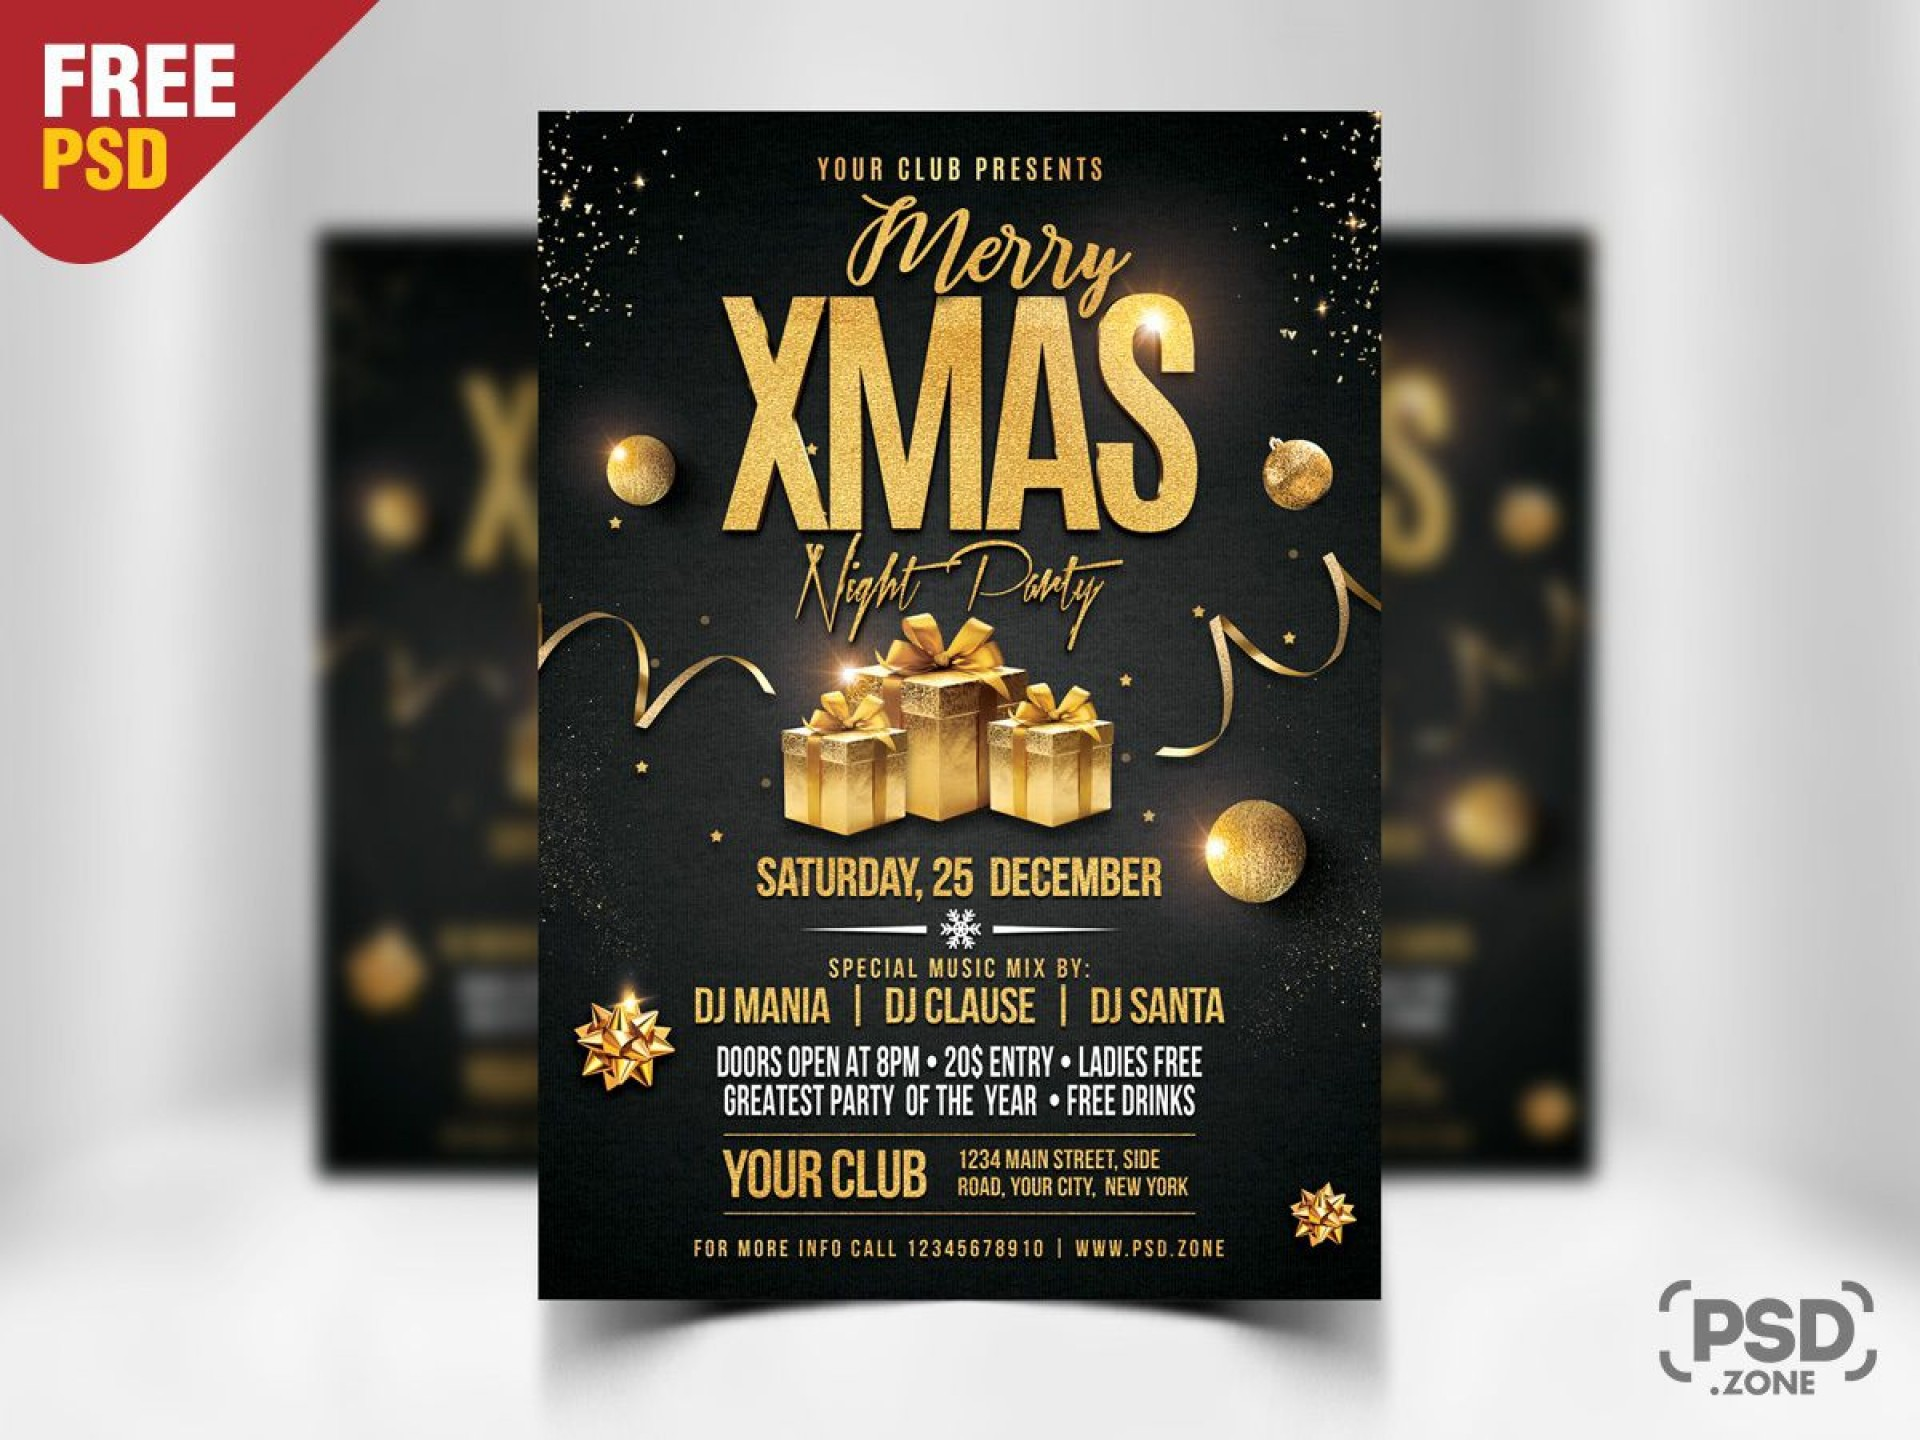 003 Archaicawful Christma Party Flyer Template Free Photo  Company Invitation Printable Word1920